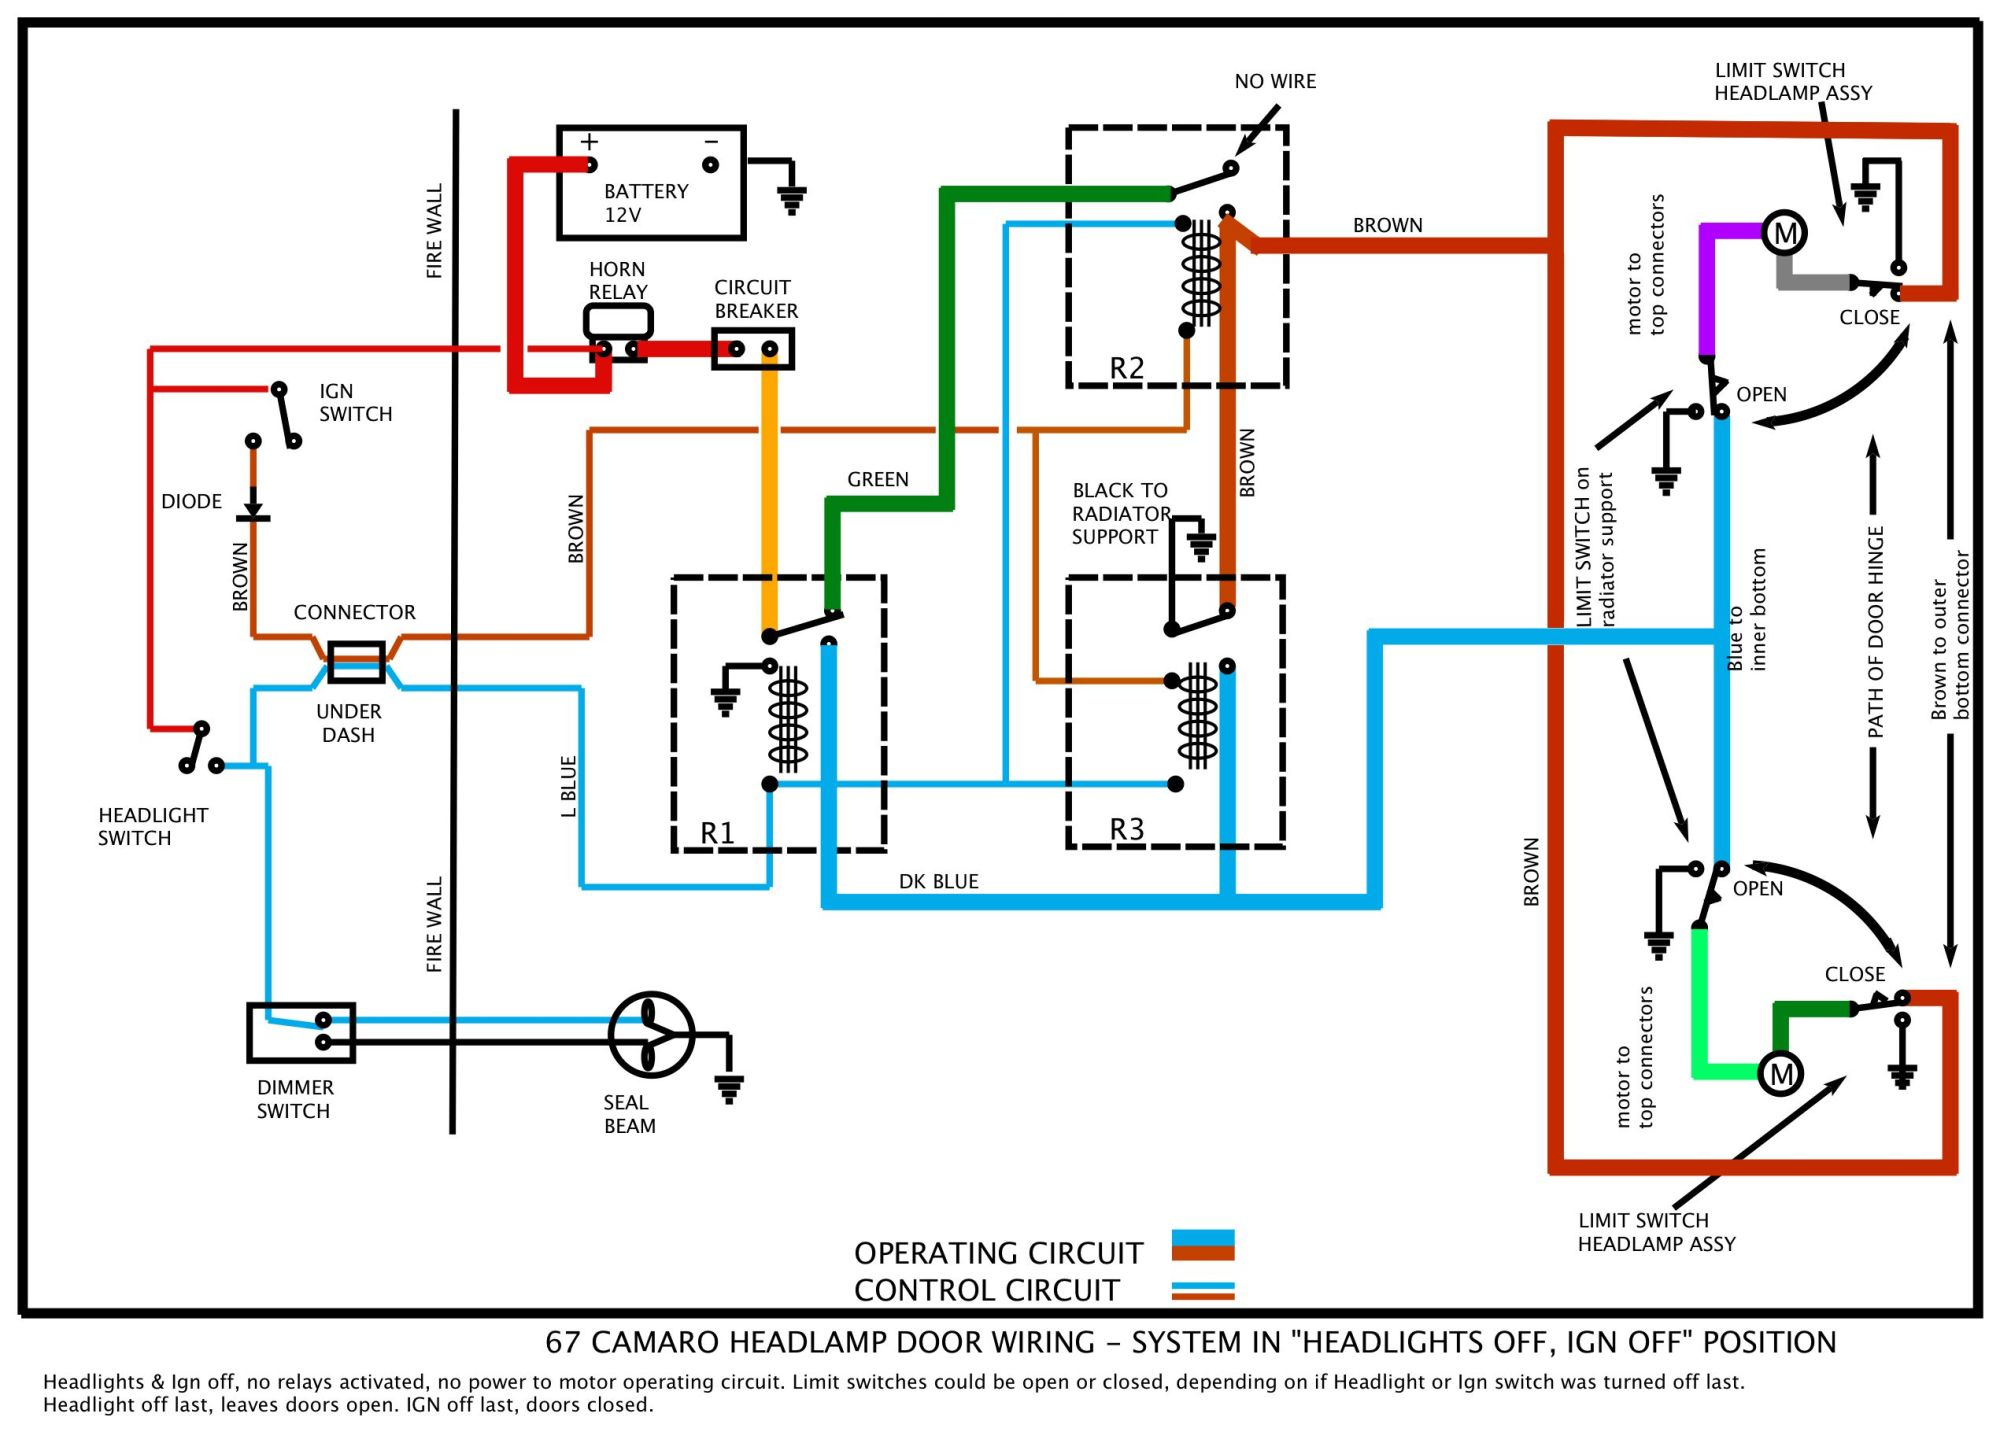 hight resolution of 1968 firebird wiring harness diagram wiring diagram 1968 camaro engine wiring harness diagram pics